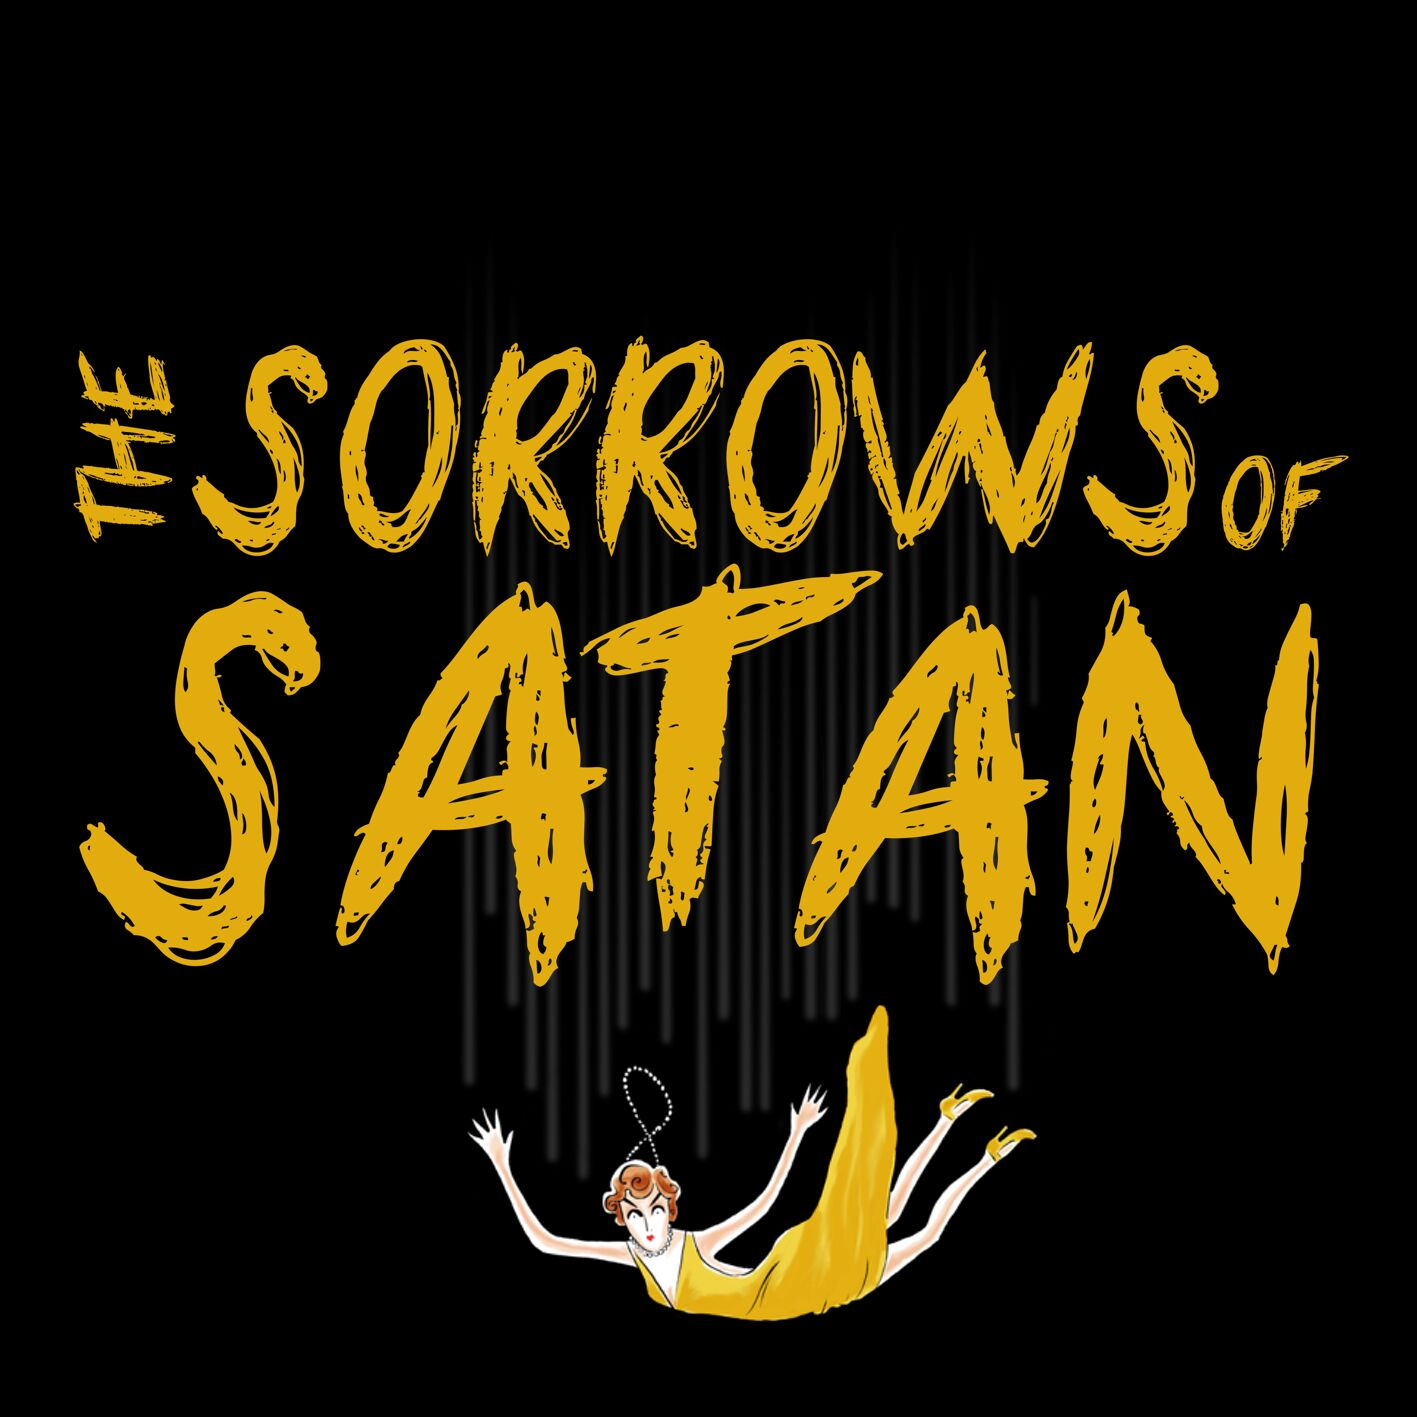 THE SORROWS OF SATAN - FEBRUARY 2017  ADAM IS DIRECTING THE WORLD PREMIERE OF THE SORROWS OF SATAN. A NEW MUSICAL PLAY BY BATEMAN AND CONLEY  MORE INFO